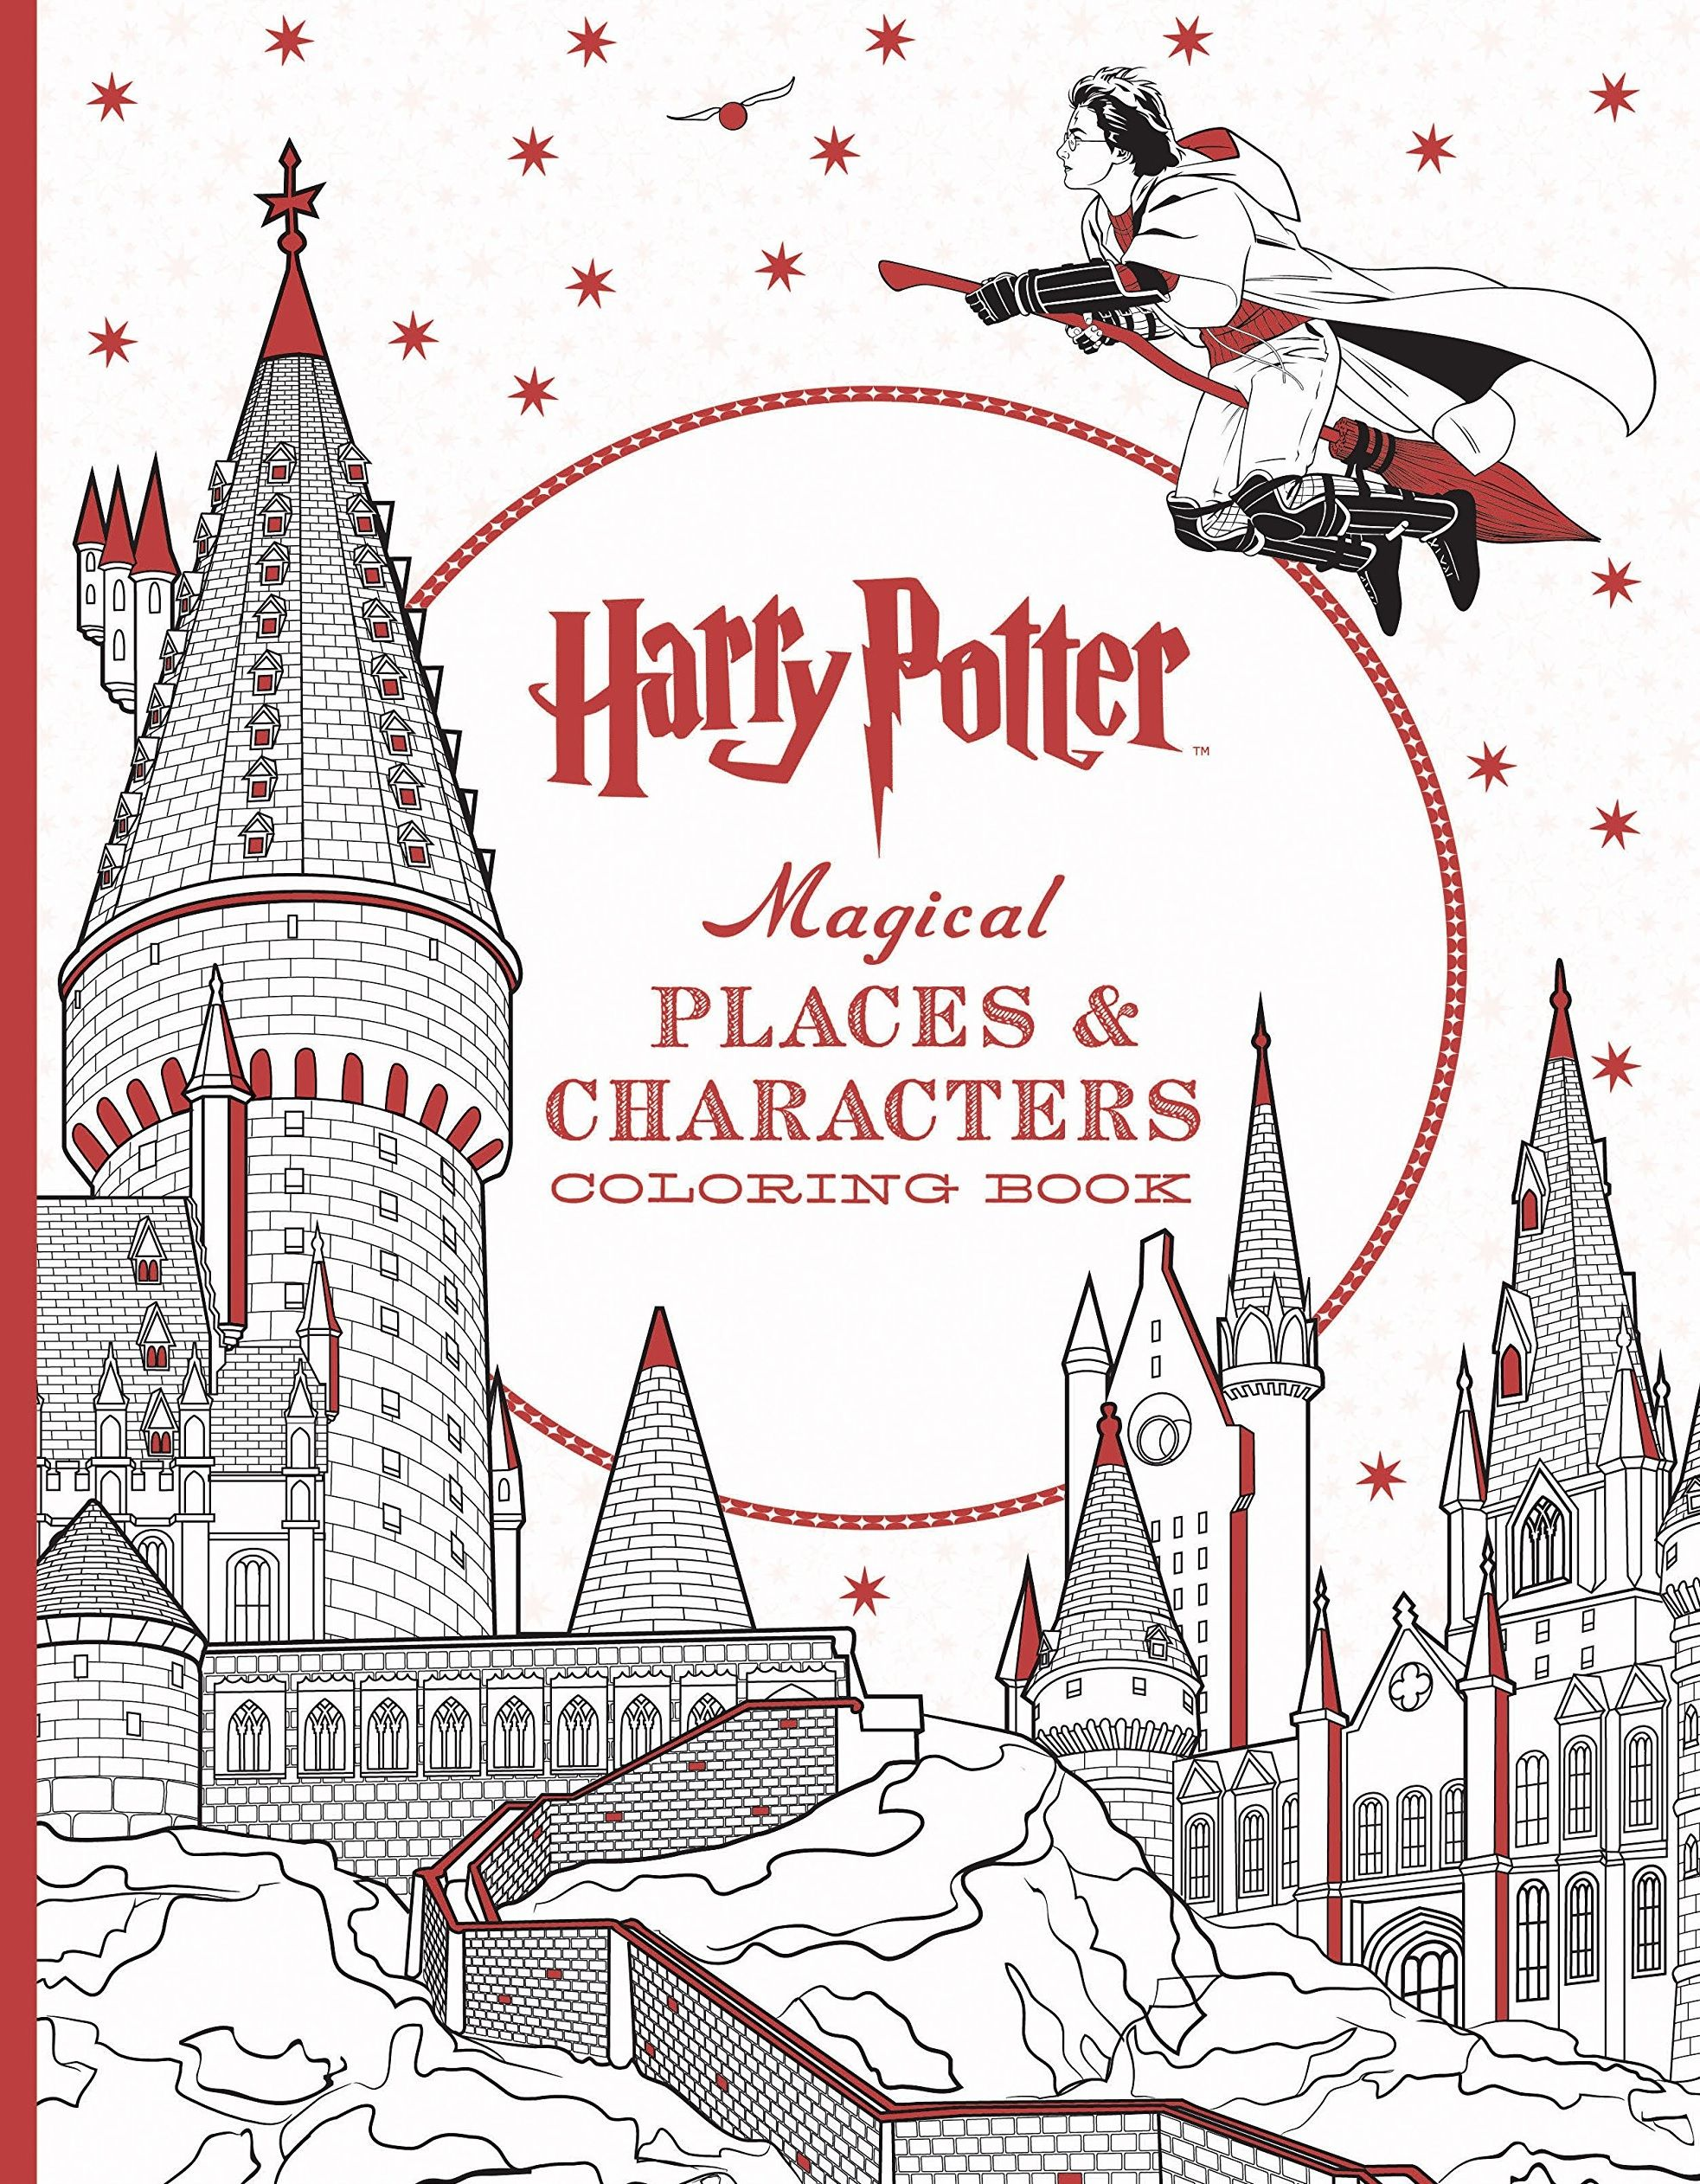 Movie Treasures By Brenda Harry Potter Coloring Books Harry Potter Coloring Book Harry Potter Colors Harry Potter Gifts